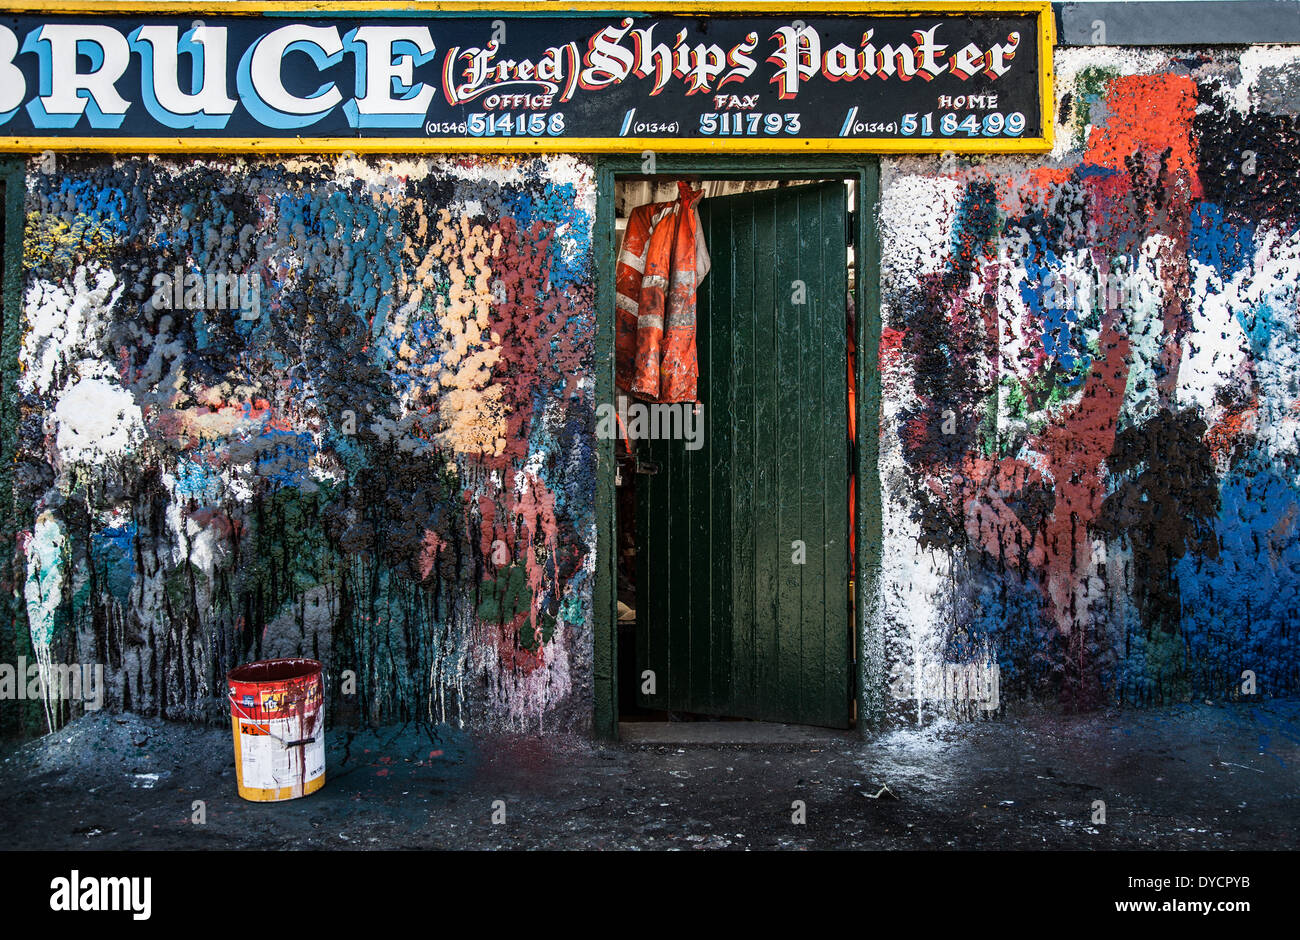 W Bruce Ship Painter's office at the harbour in Fraserburgh, Scotland, UK - Stock Image